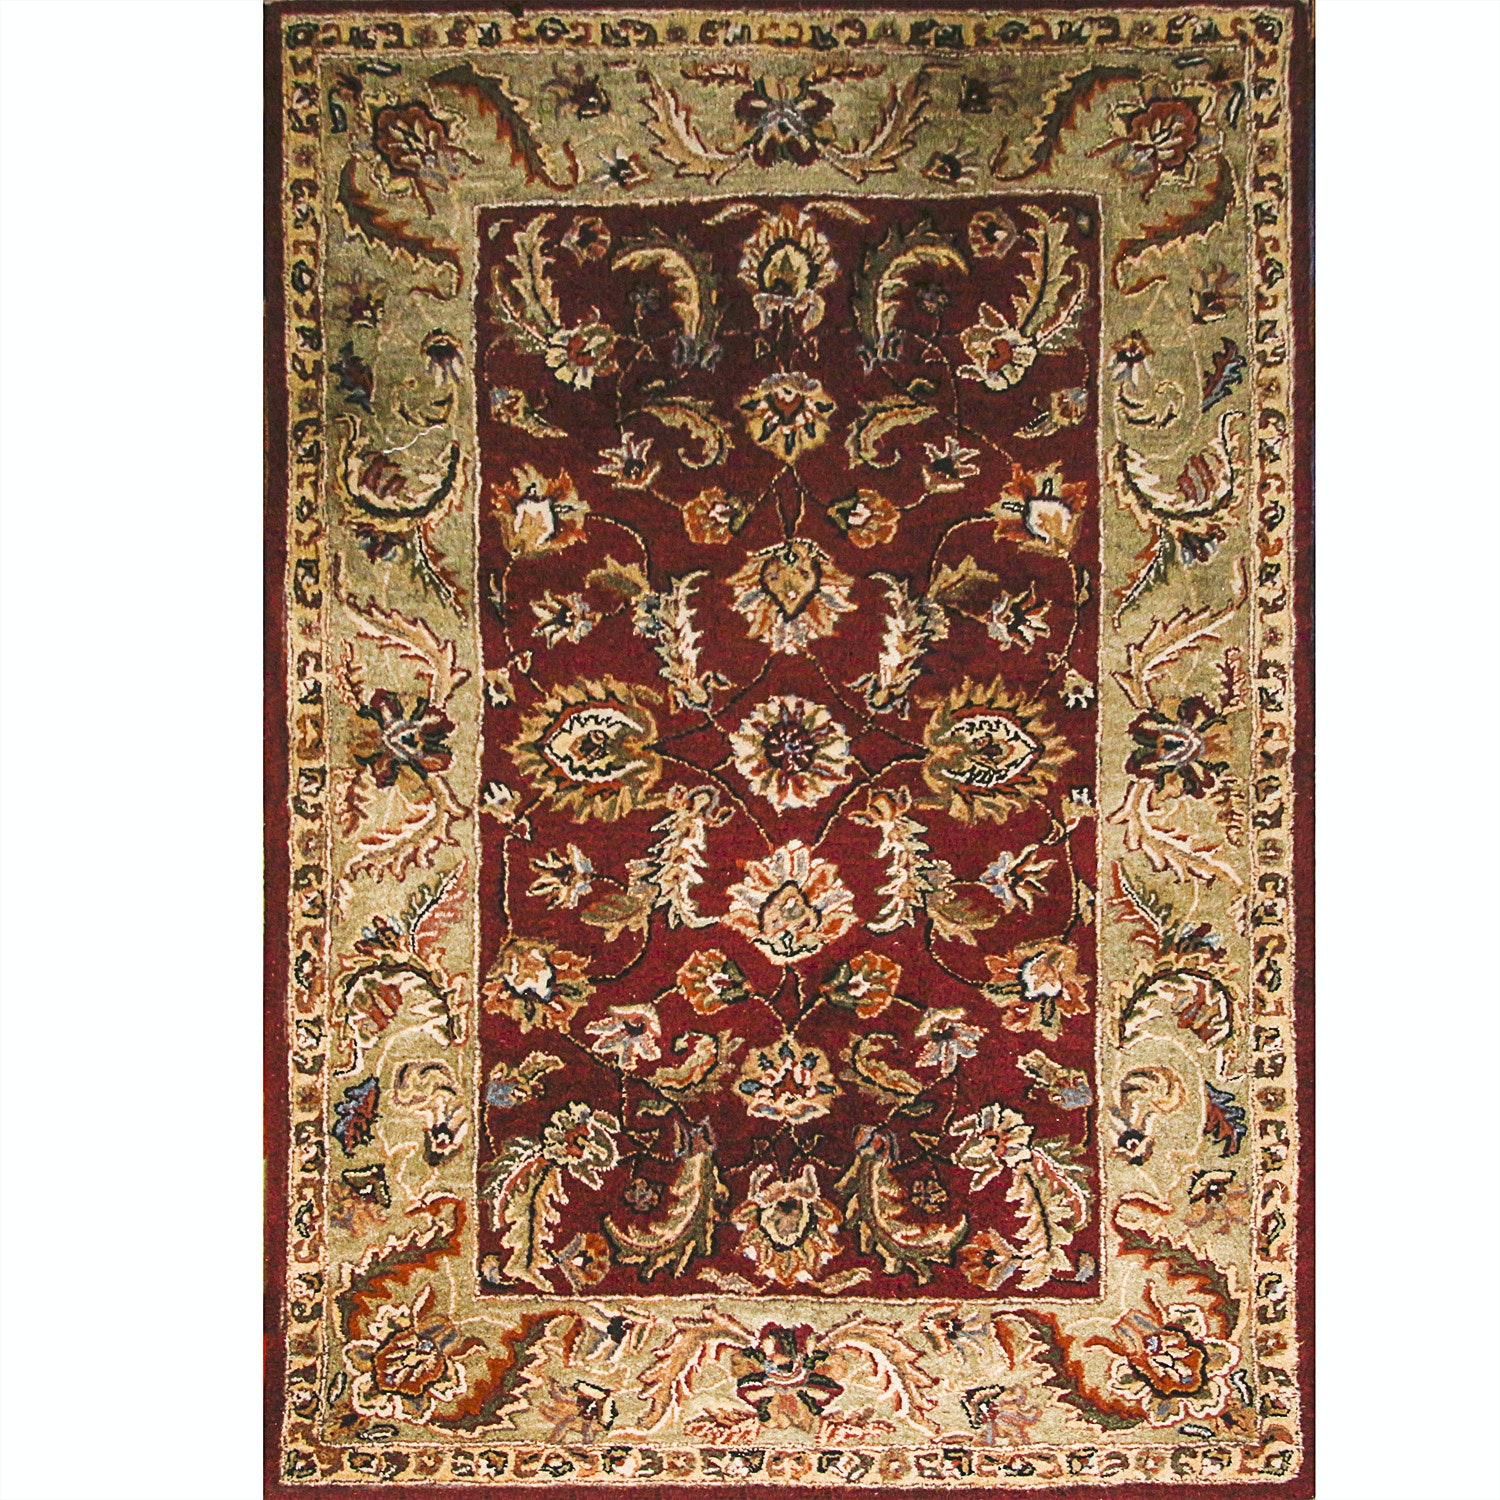 Tufted Indo-Persian Wool Area Rug